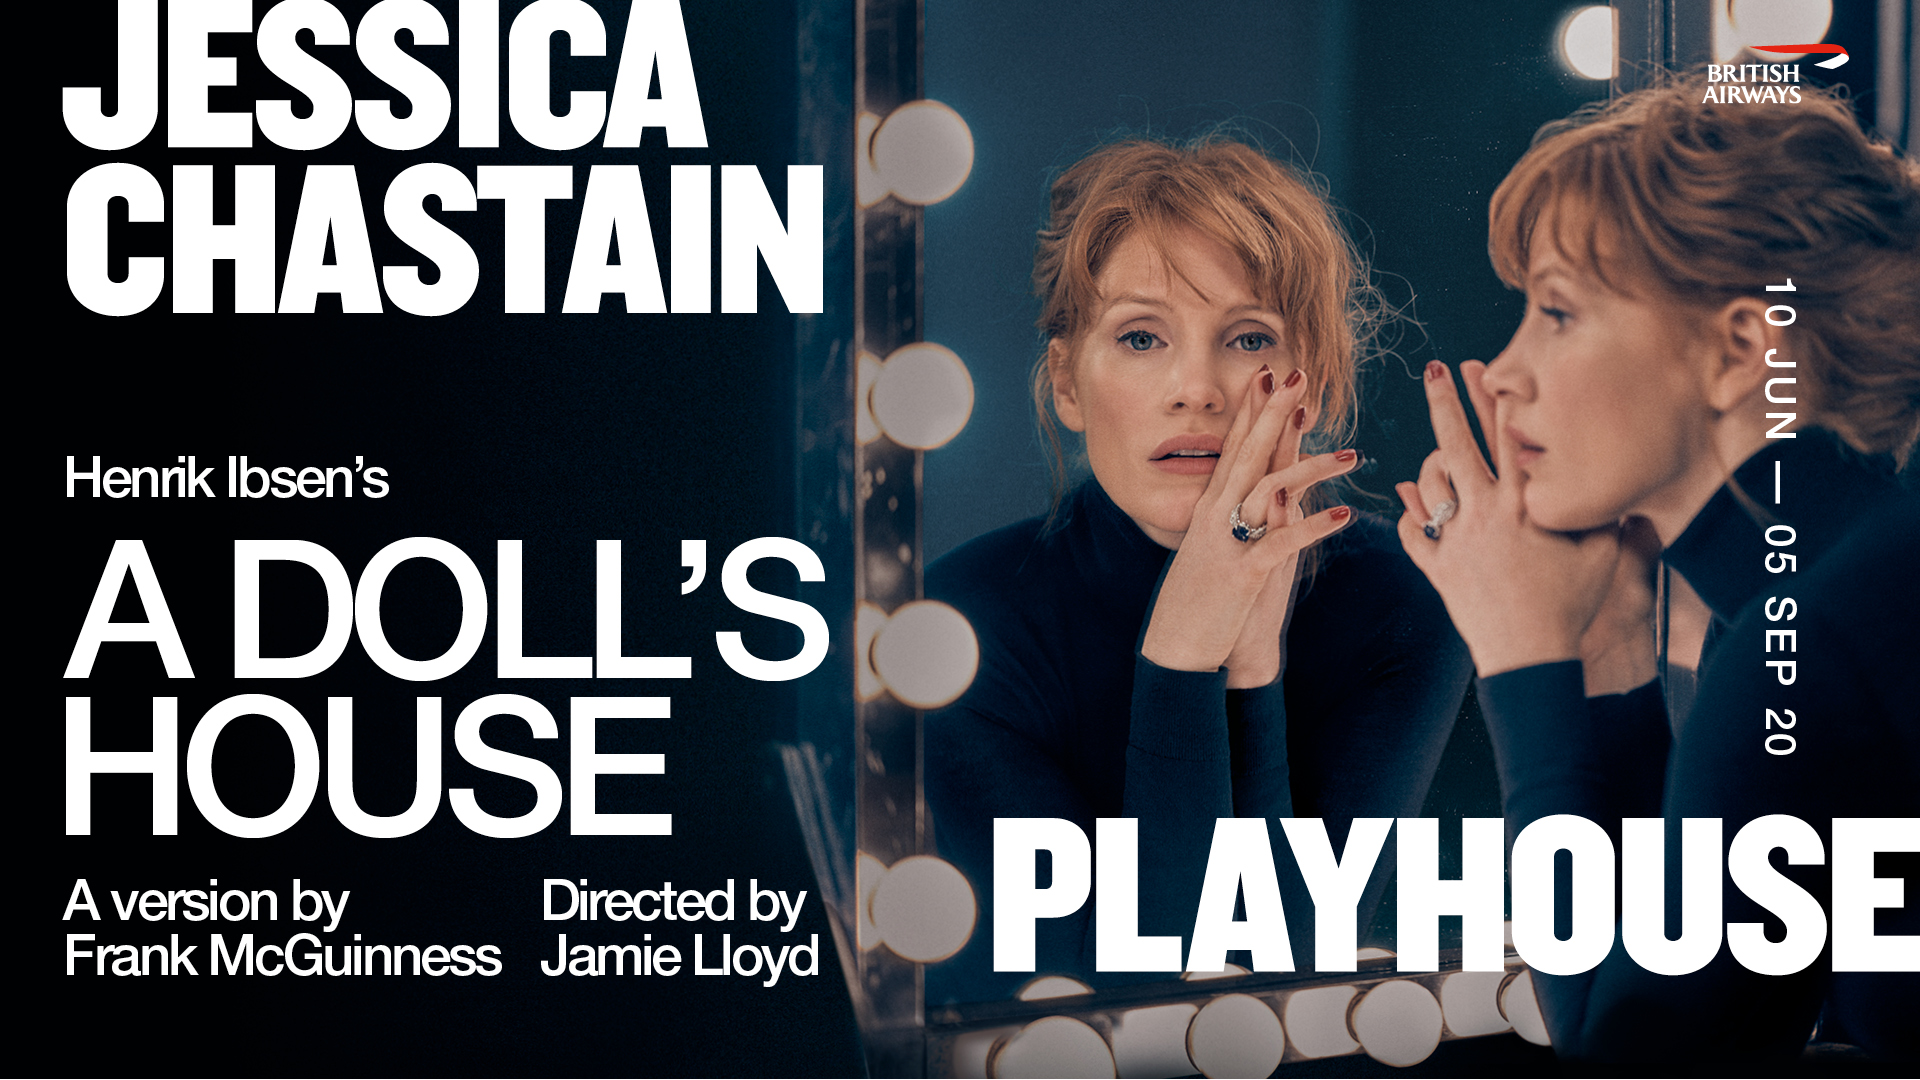 Title artwork for A Doll's House starring Jessica Chastain and directed by Jamie Lloyd